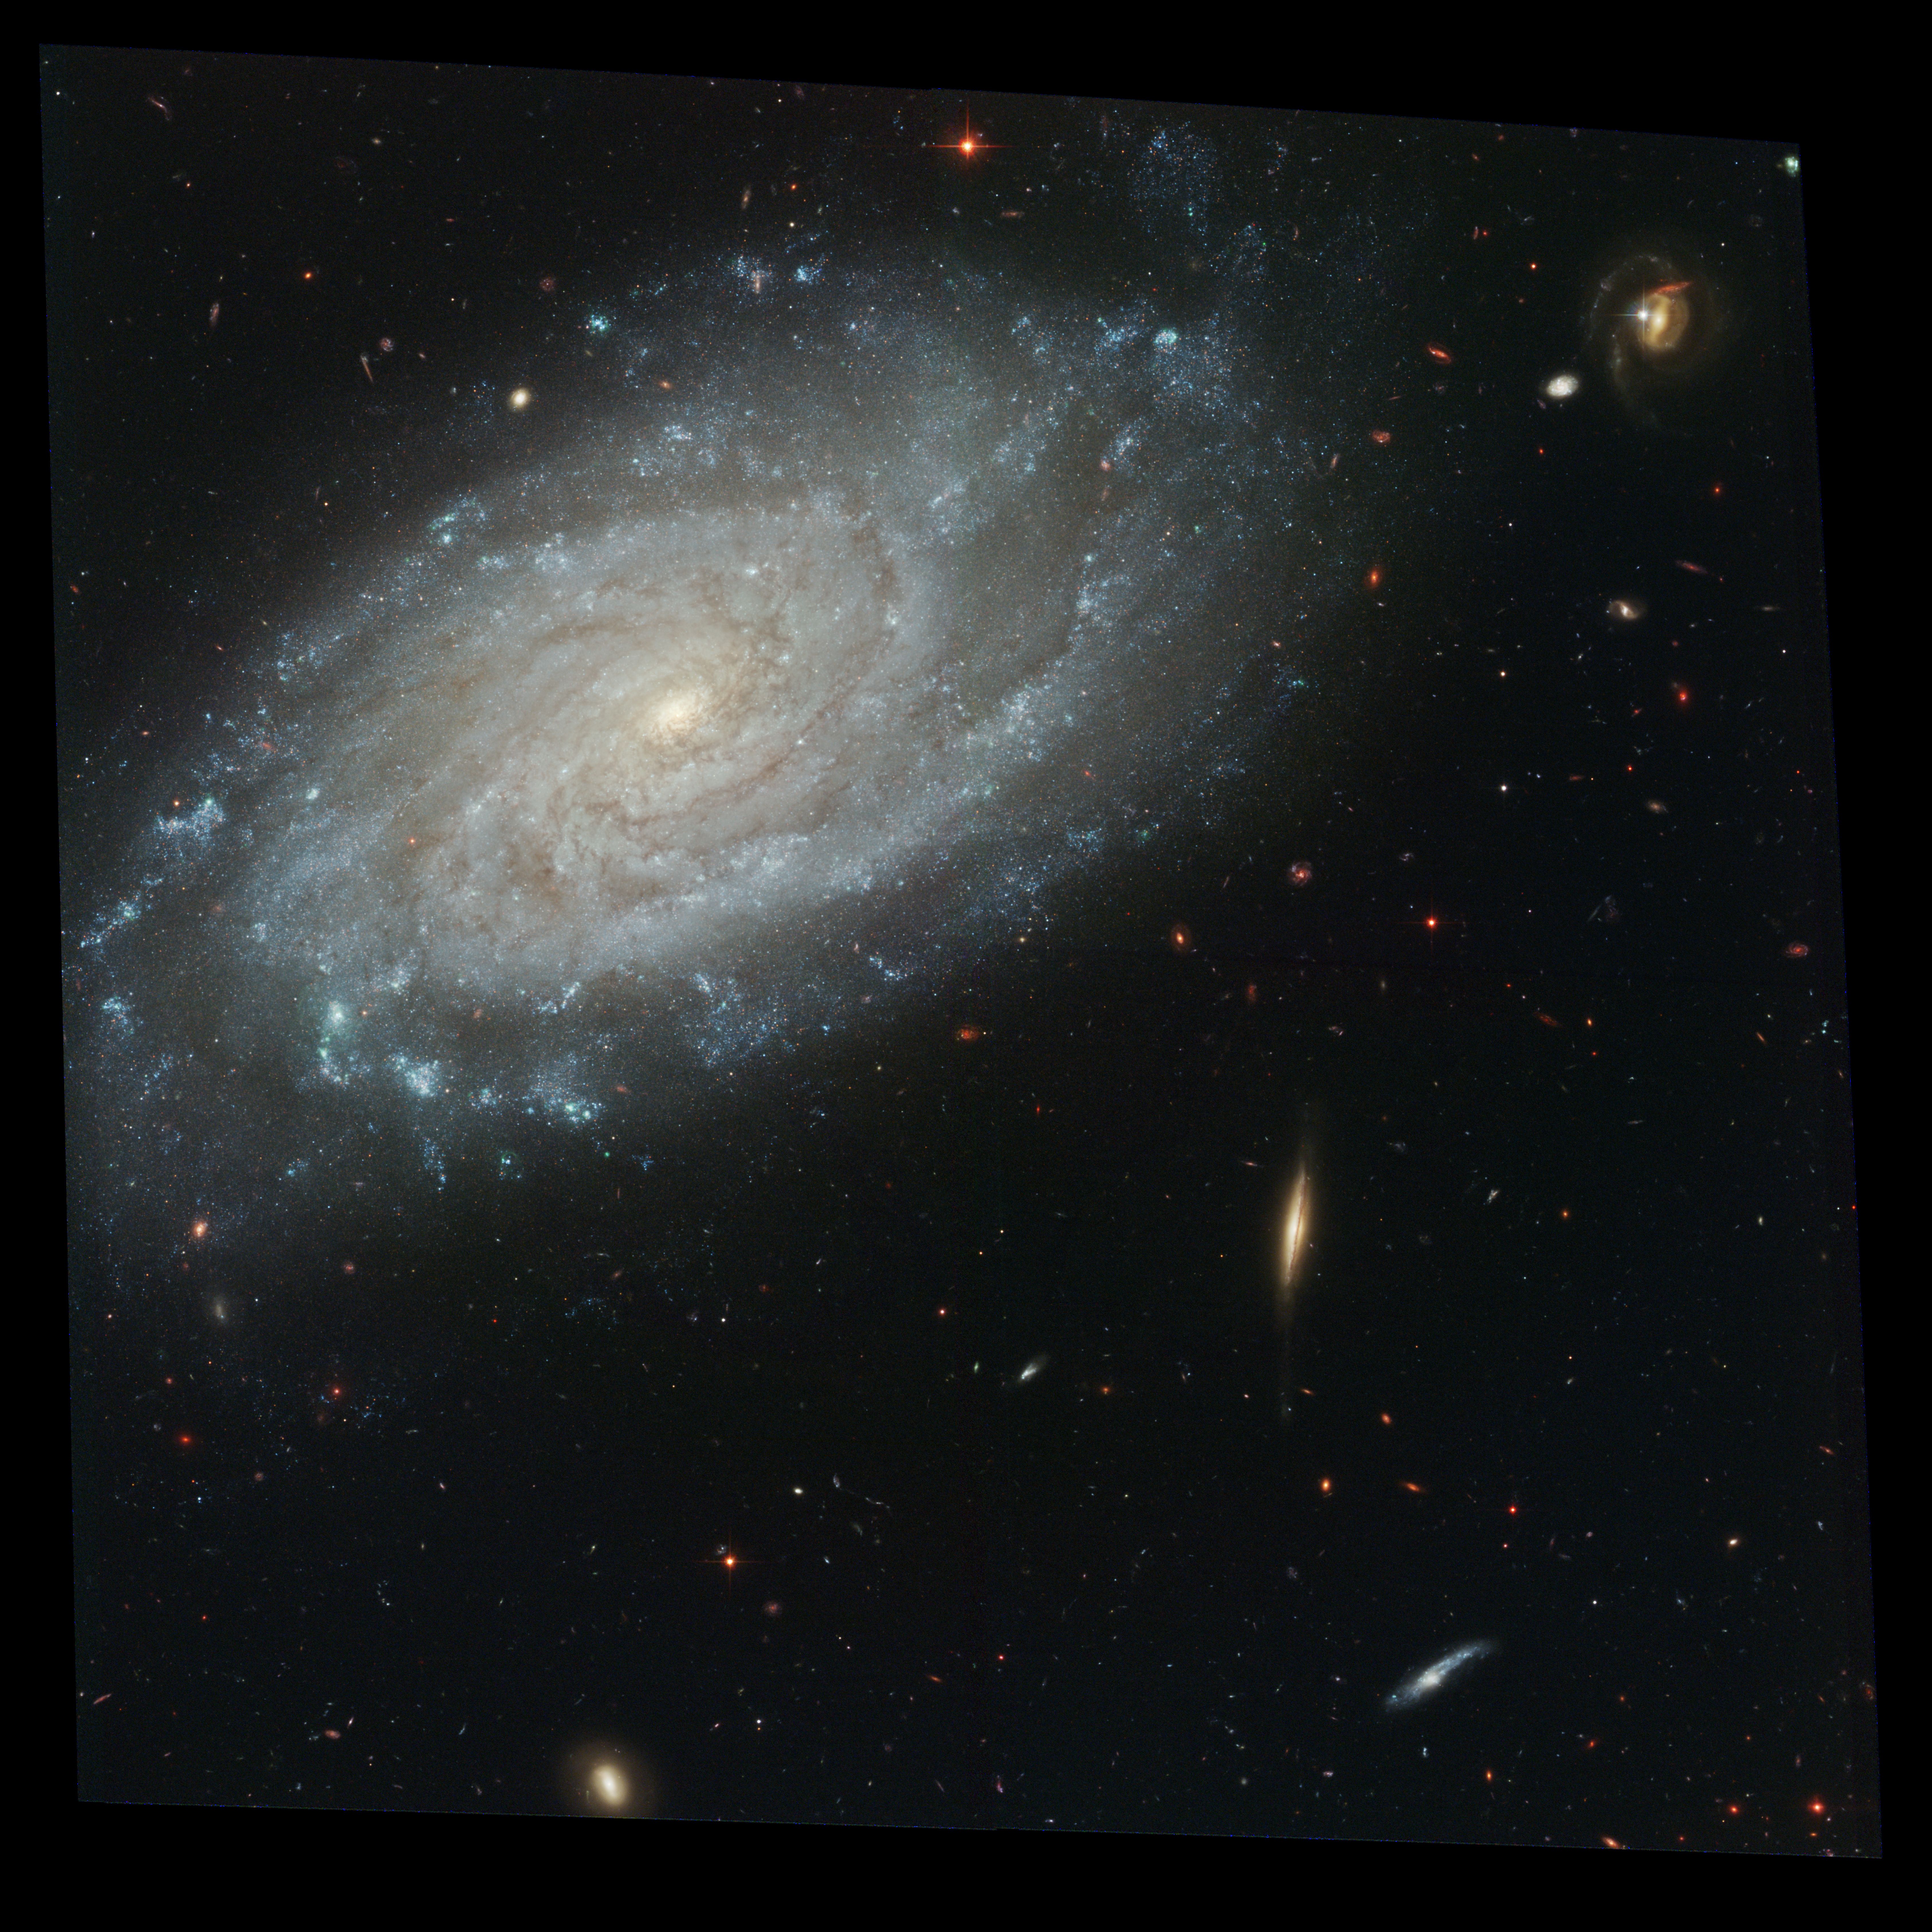 Depiction of NGC 3370